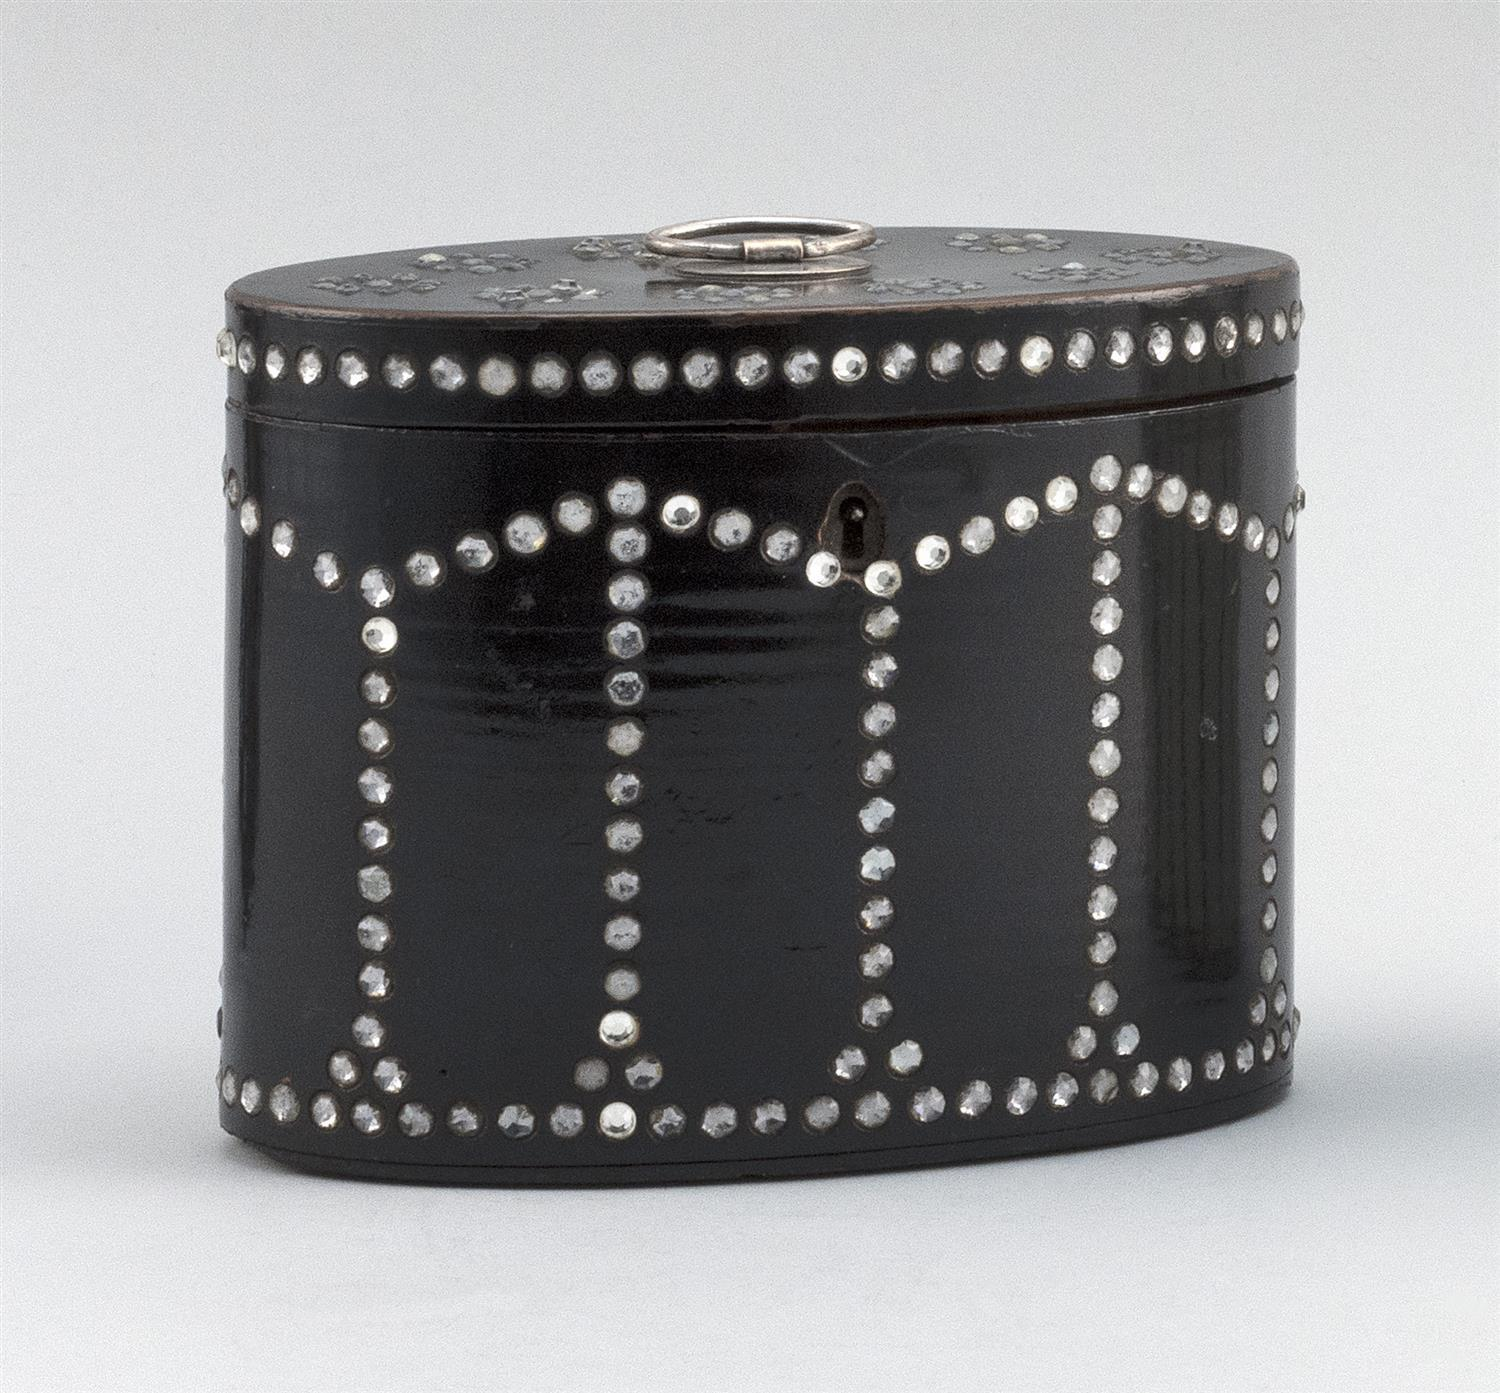 """ENGLISH BLACK LACQUER OVAL TEA CADDY Inset with glass beads in a geometric design. Lift top and fitted interior. Height 5"""". Width 6""""..."""